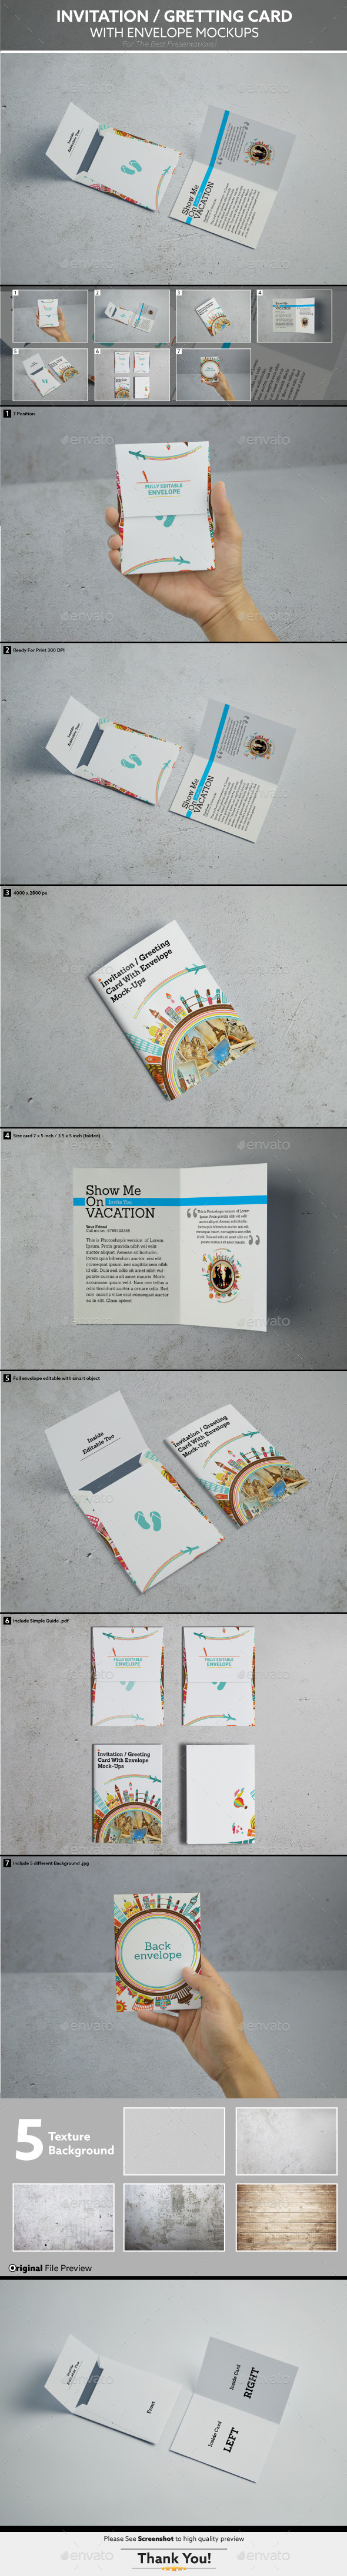 Invitation / Gretting Card With Envelope Mockups - Miscellaneous Print